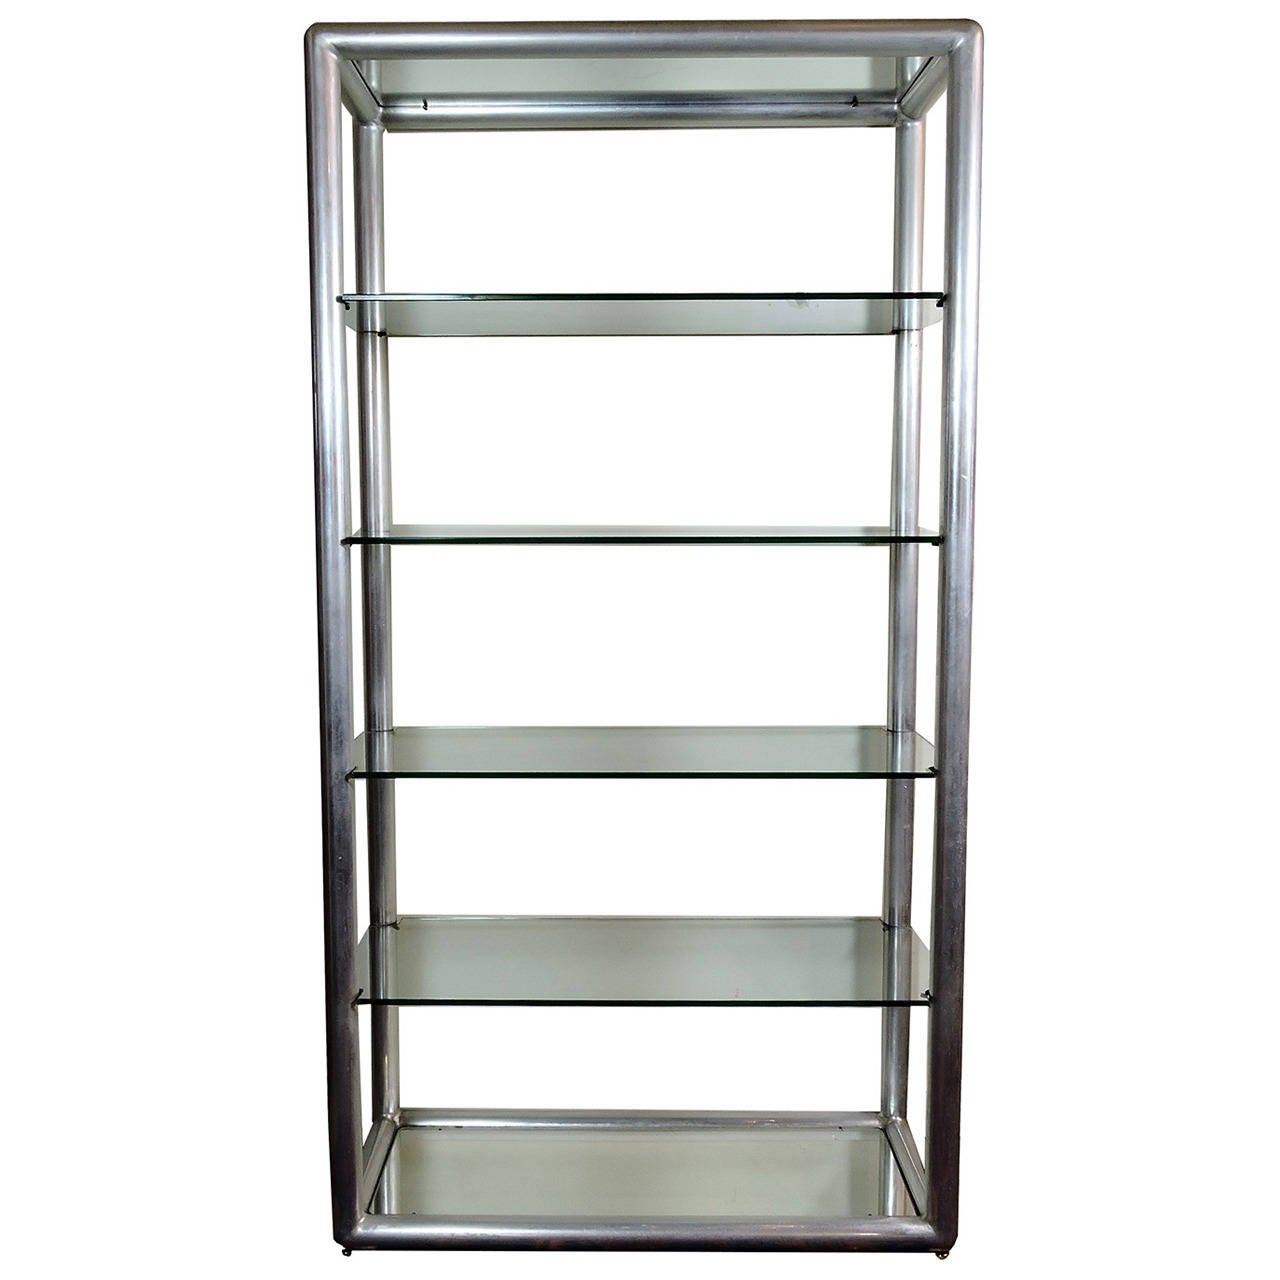 Mid century modern aluminum and glass five tier etagere for sale at 1stdibs - Etagere aluminium design ...